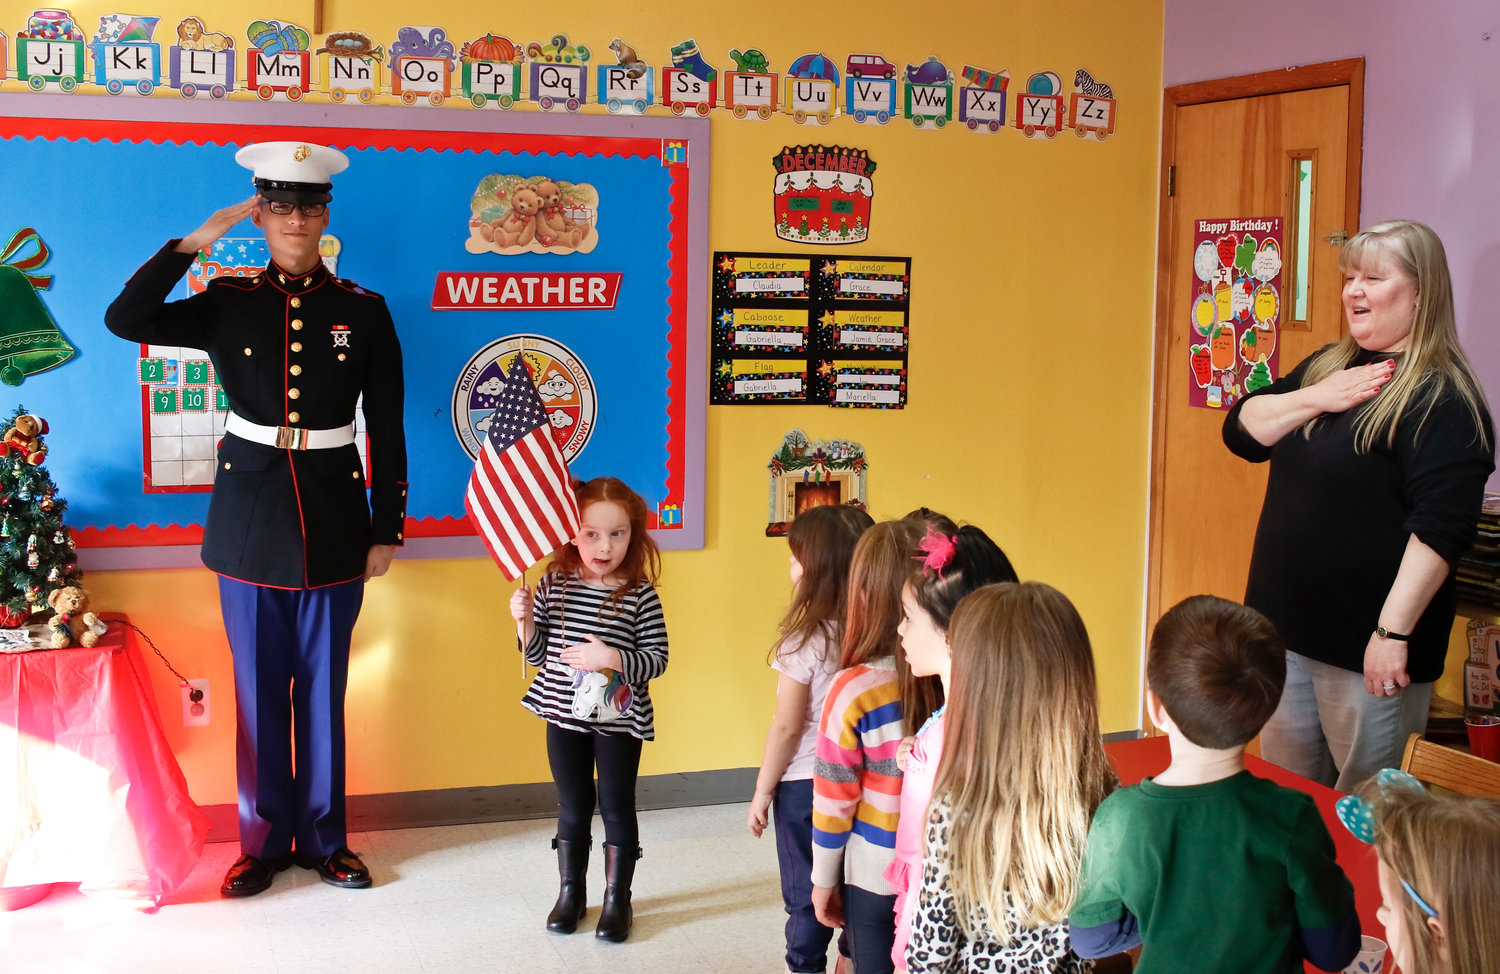 After completing boot camp, Franklin Square native Daniel Artino returned with great pomp to the pre school where his mother, Carol, far left, works and where he attended as a child.